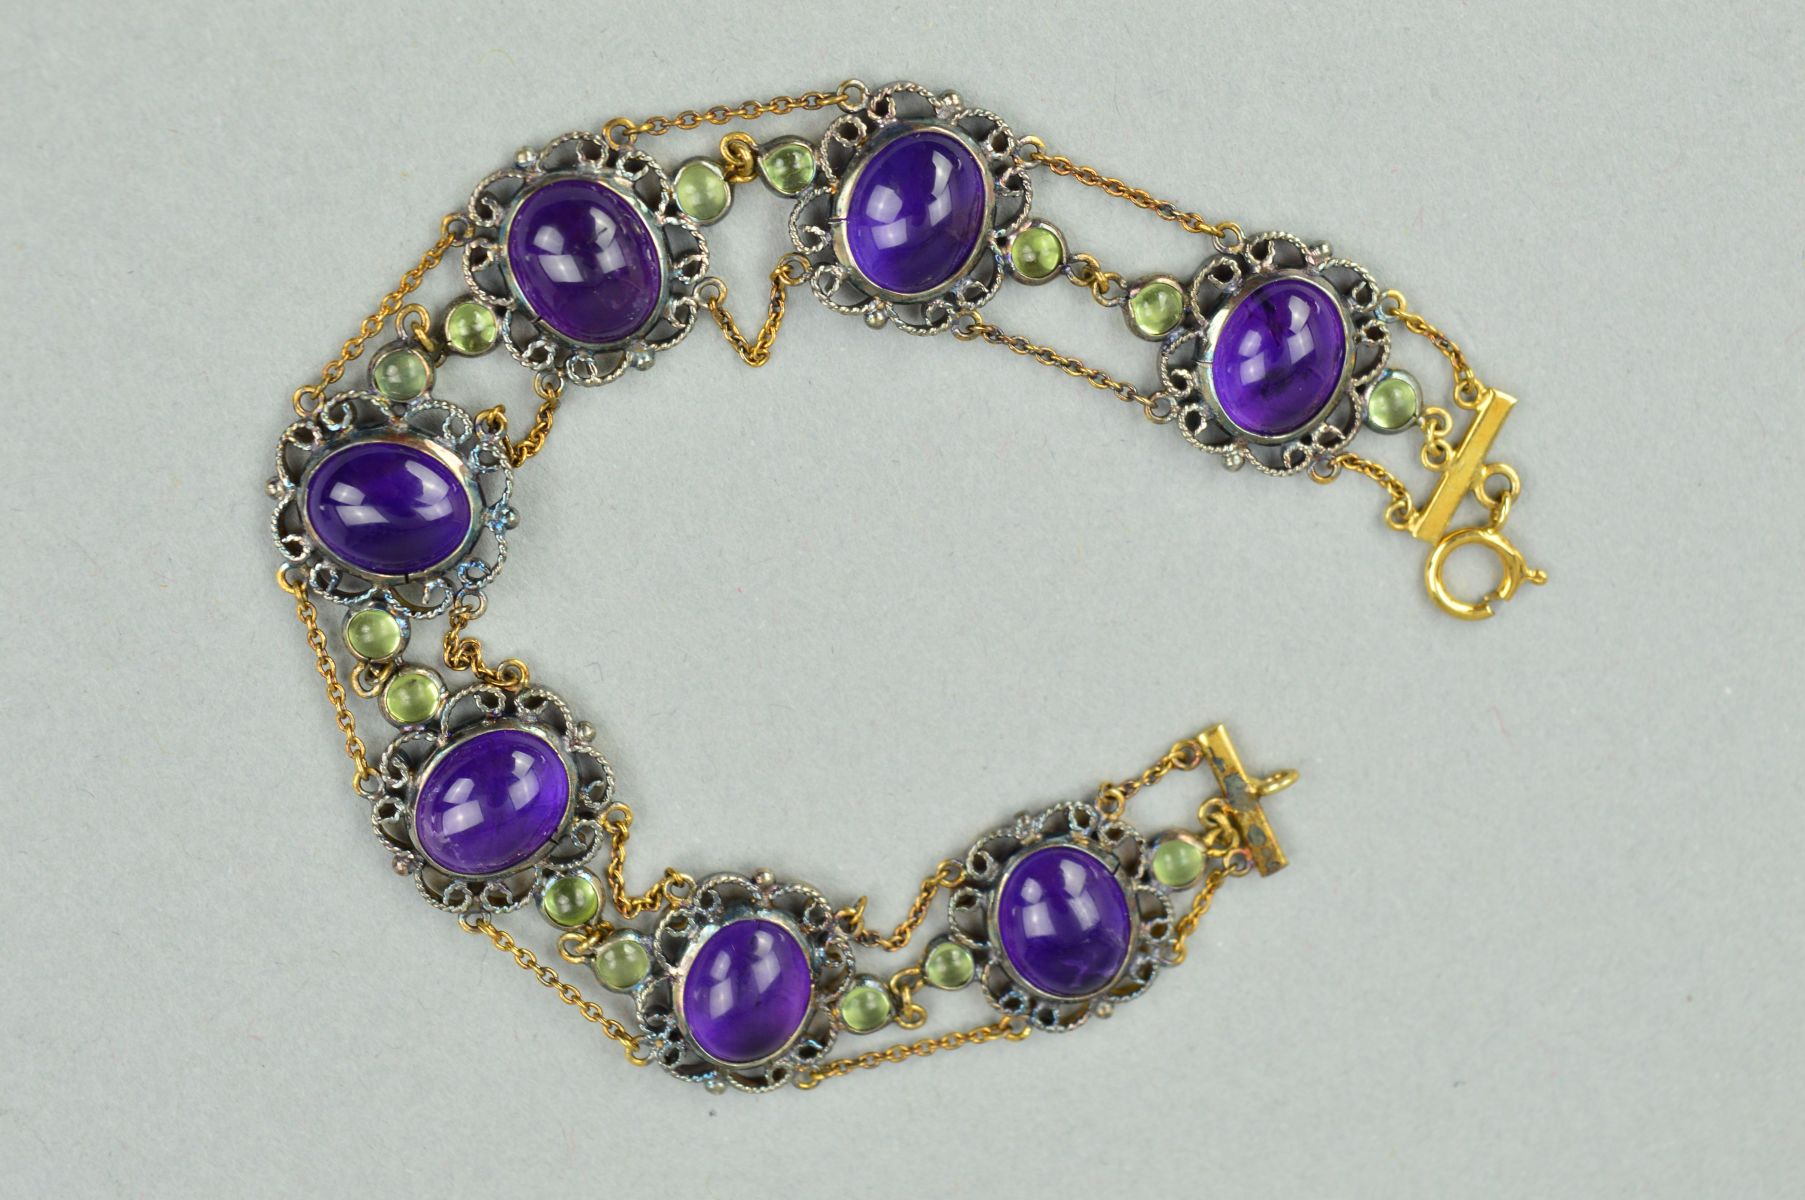 Lot 48 - A GEM BRACELET, designed as an oval amethyst cabochons within scrolling rope twist surrounds flanked